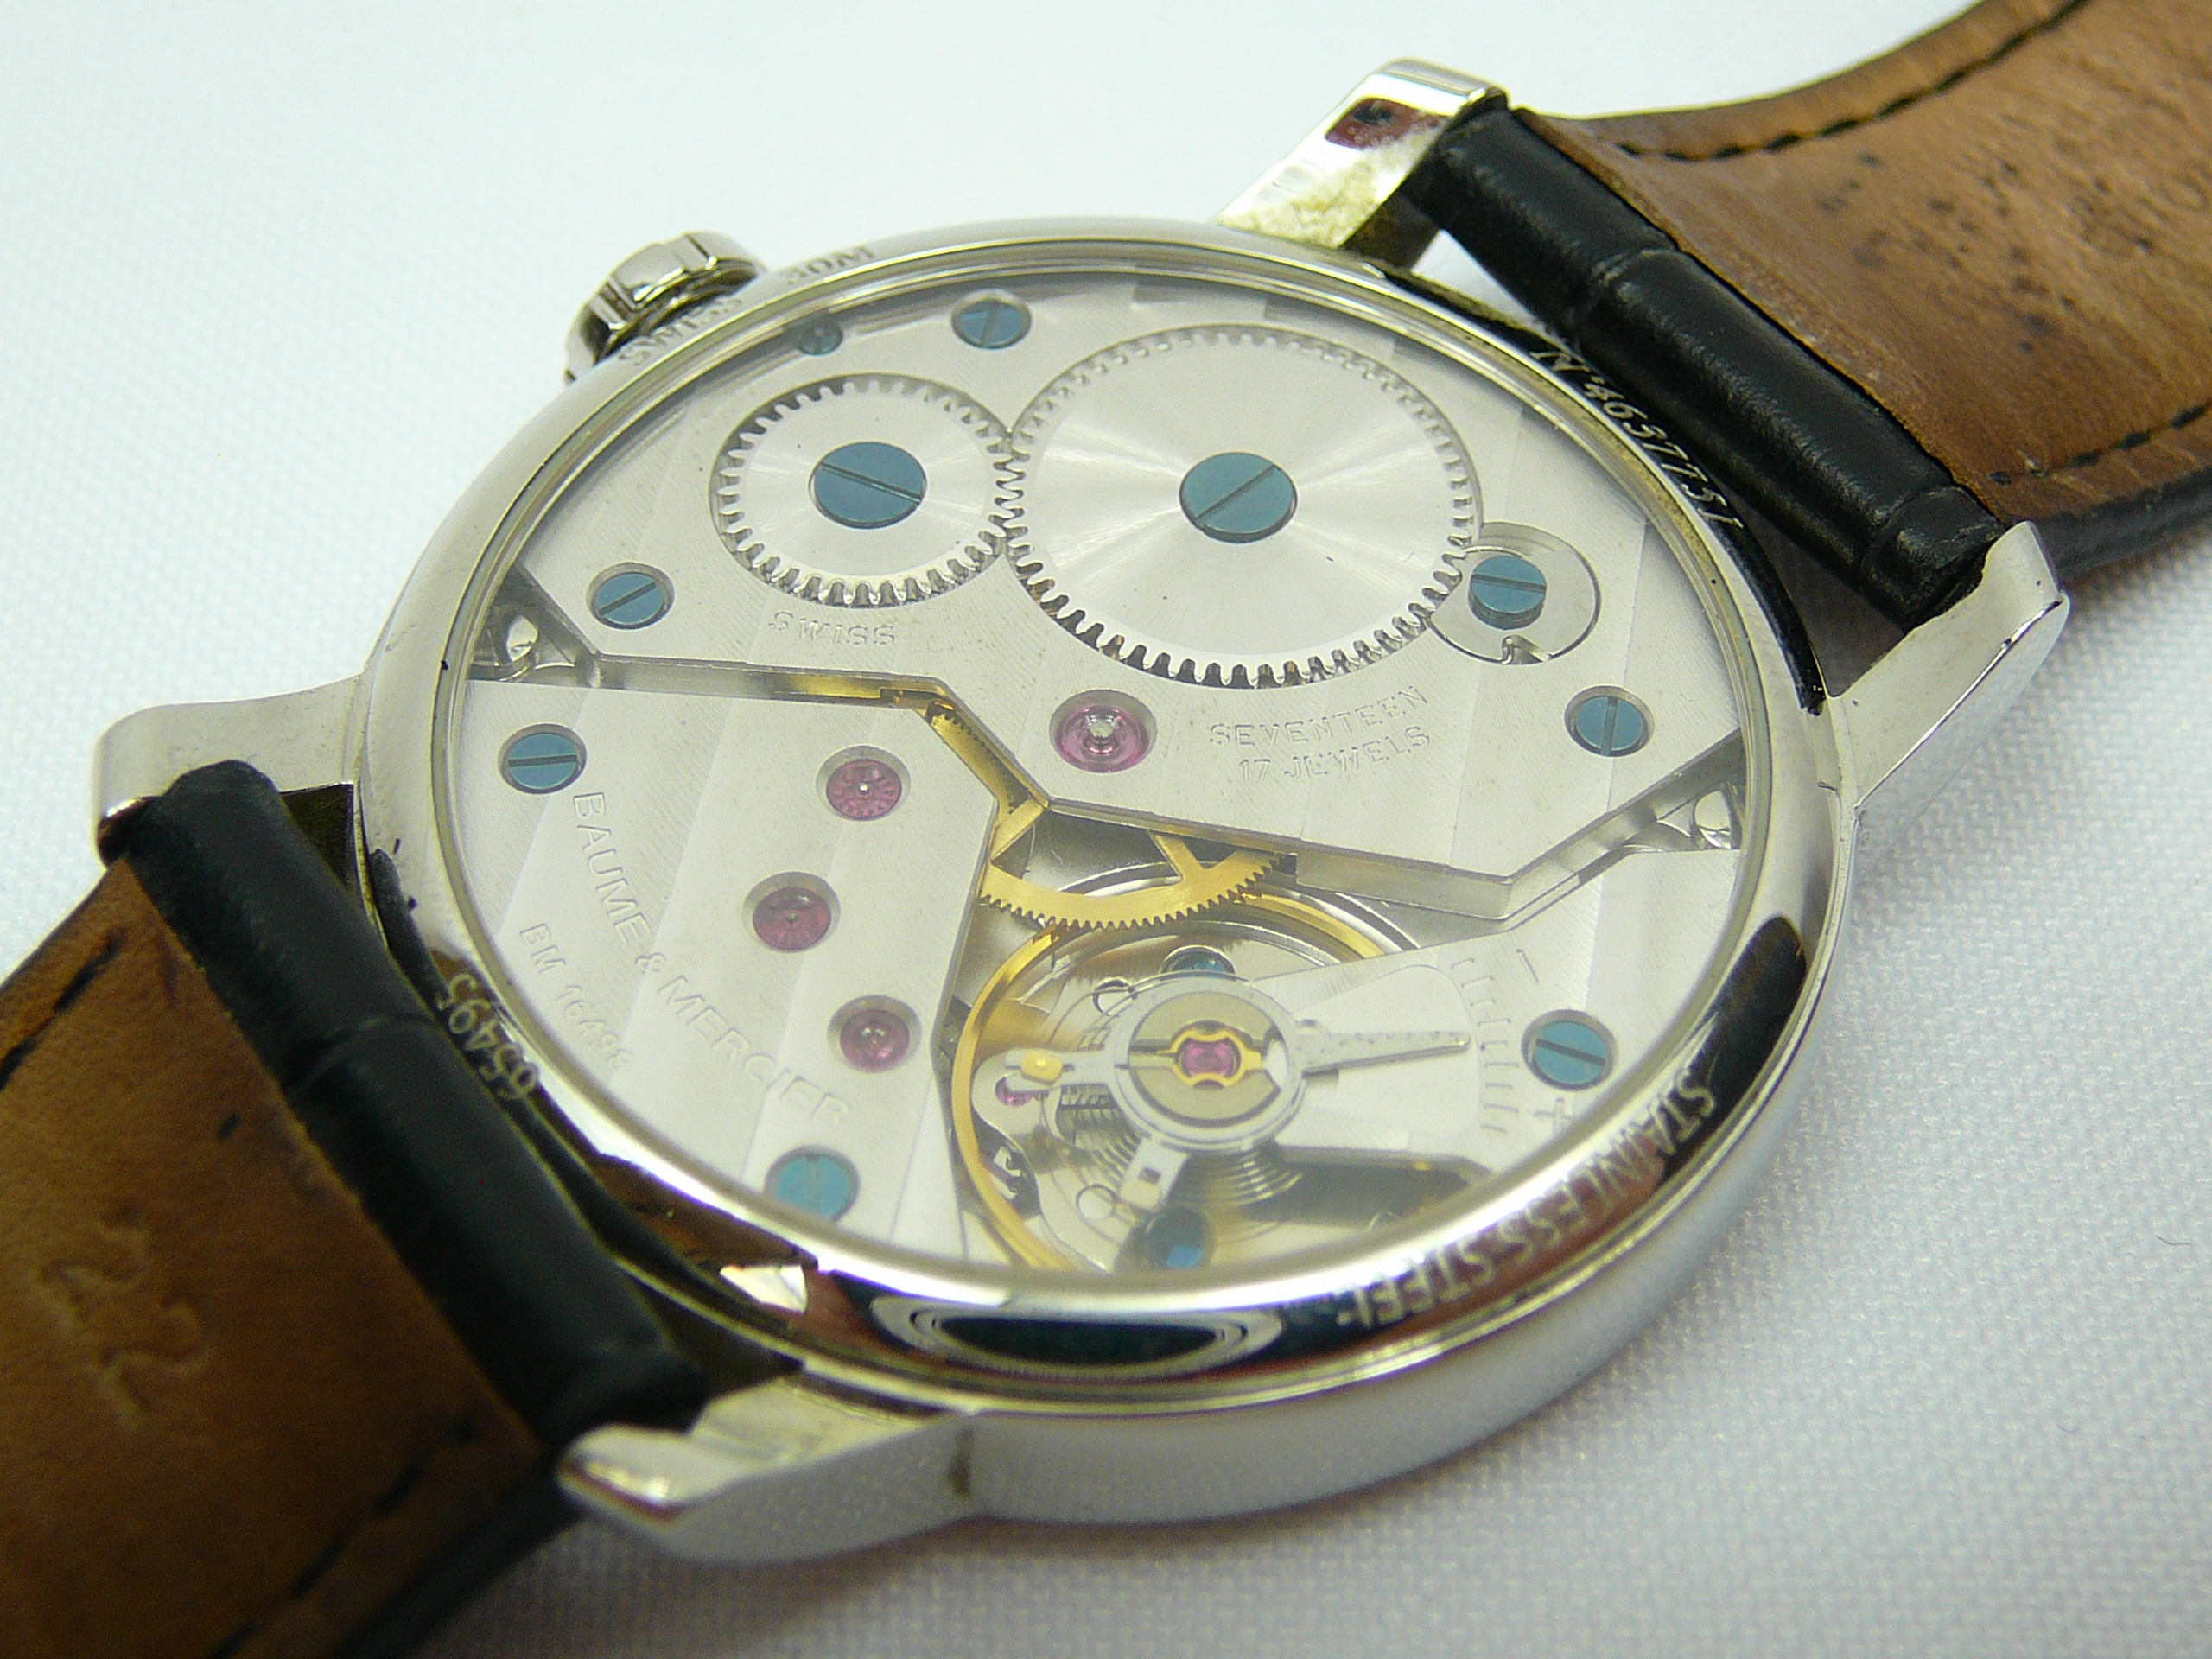 Gents Baume and Mercier Wrist Watch - Image 3 of 4